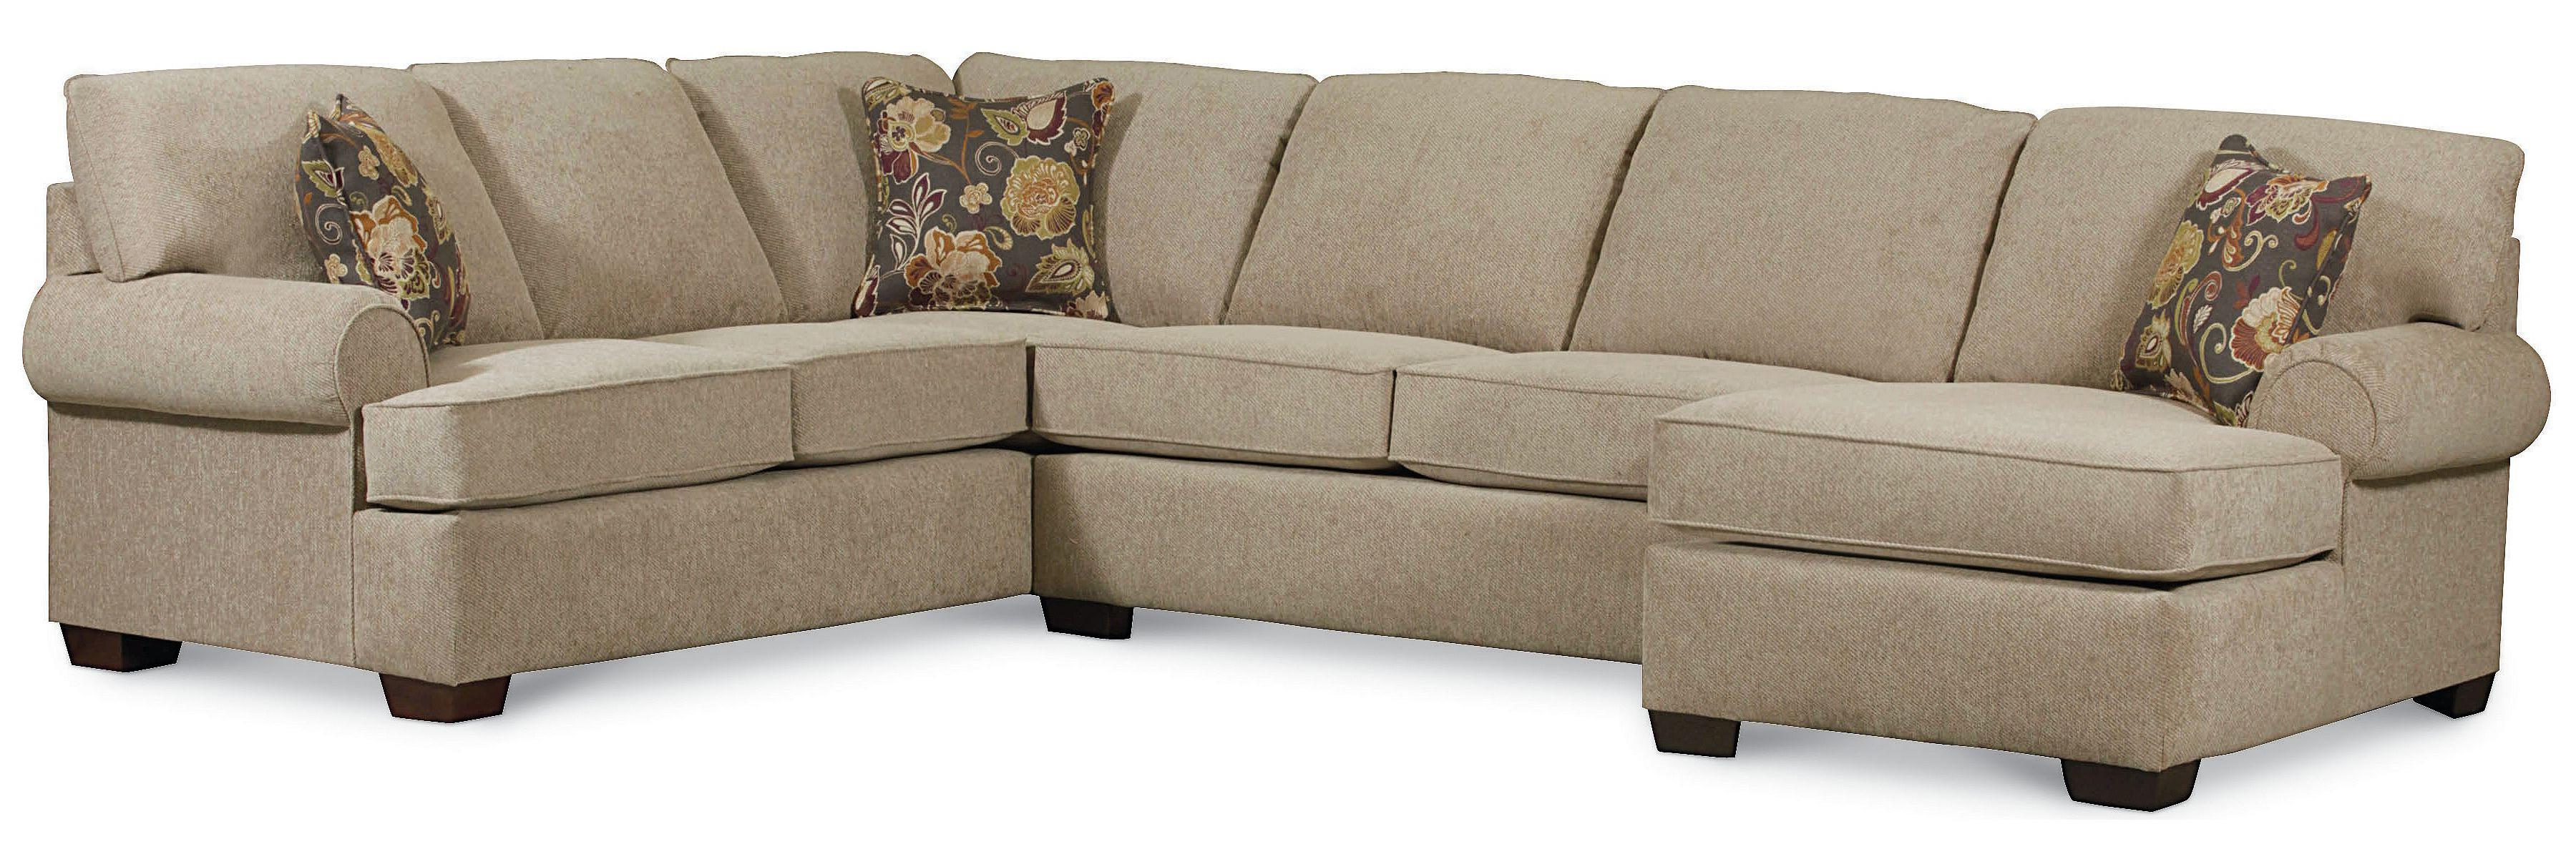 Delicieux Vivian Transitional 3 Piece Sectional Sofa By Lane